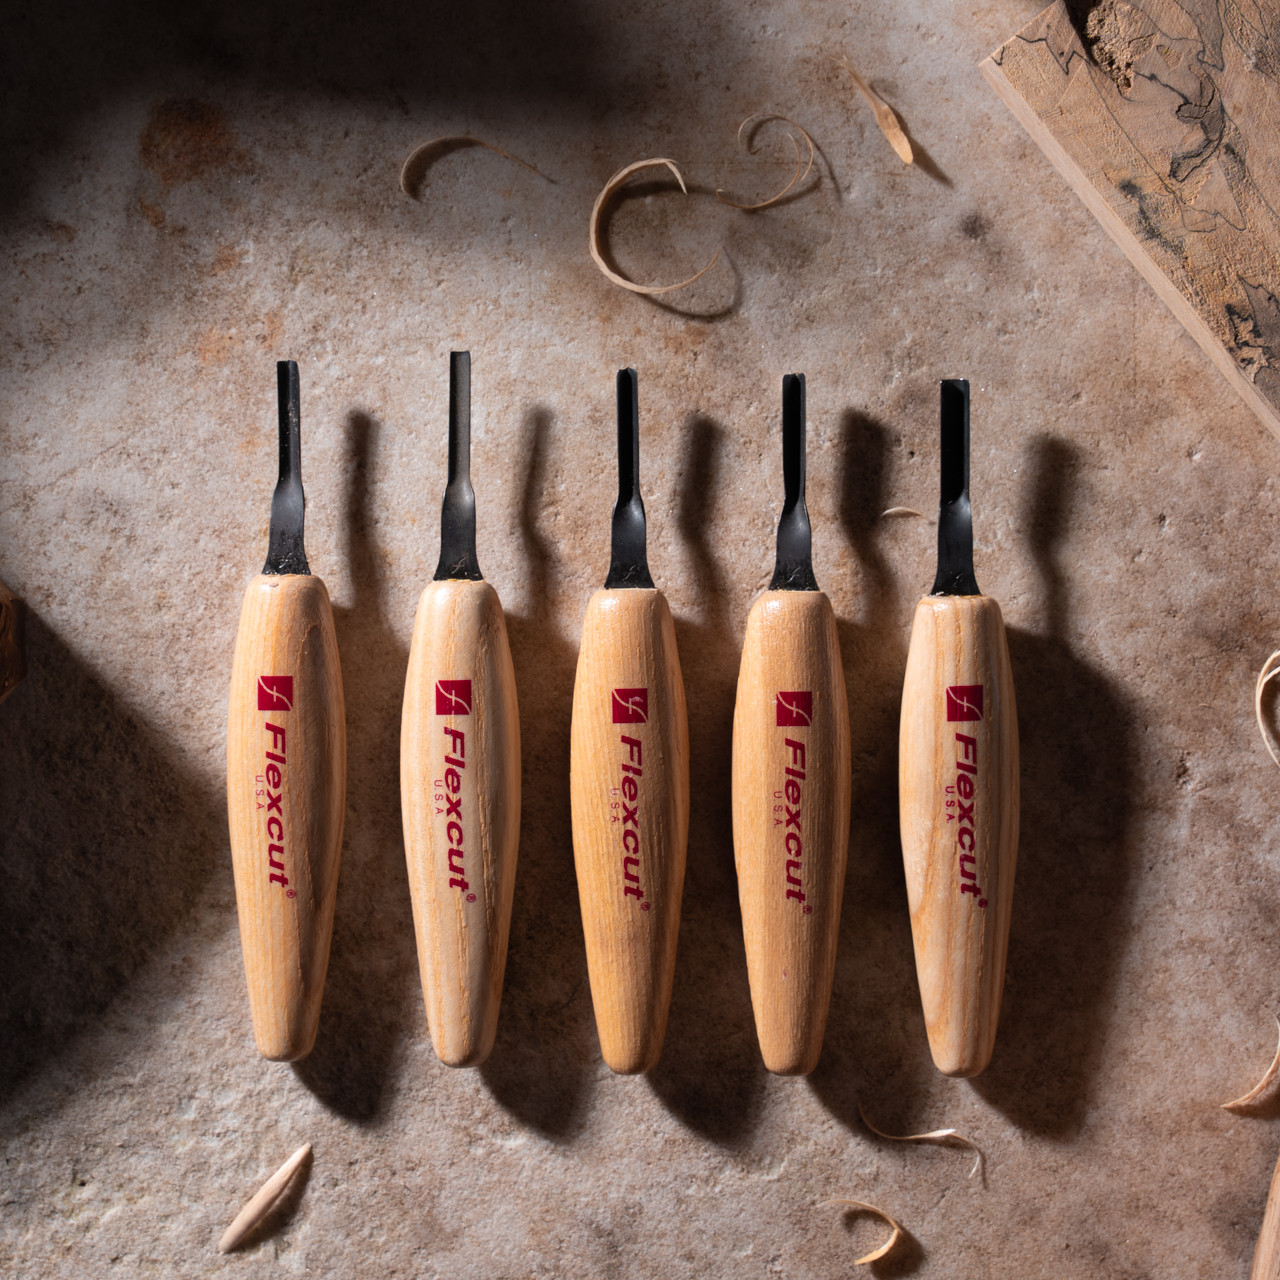 Flexcut 4mm Mixed Profile Micro Tool Set gives you the versatility you need for various tasks